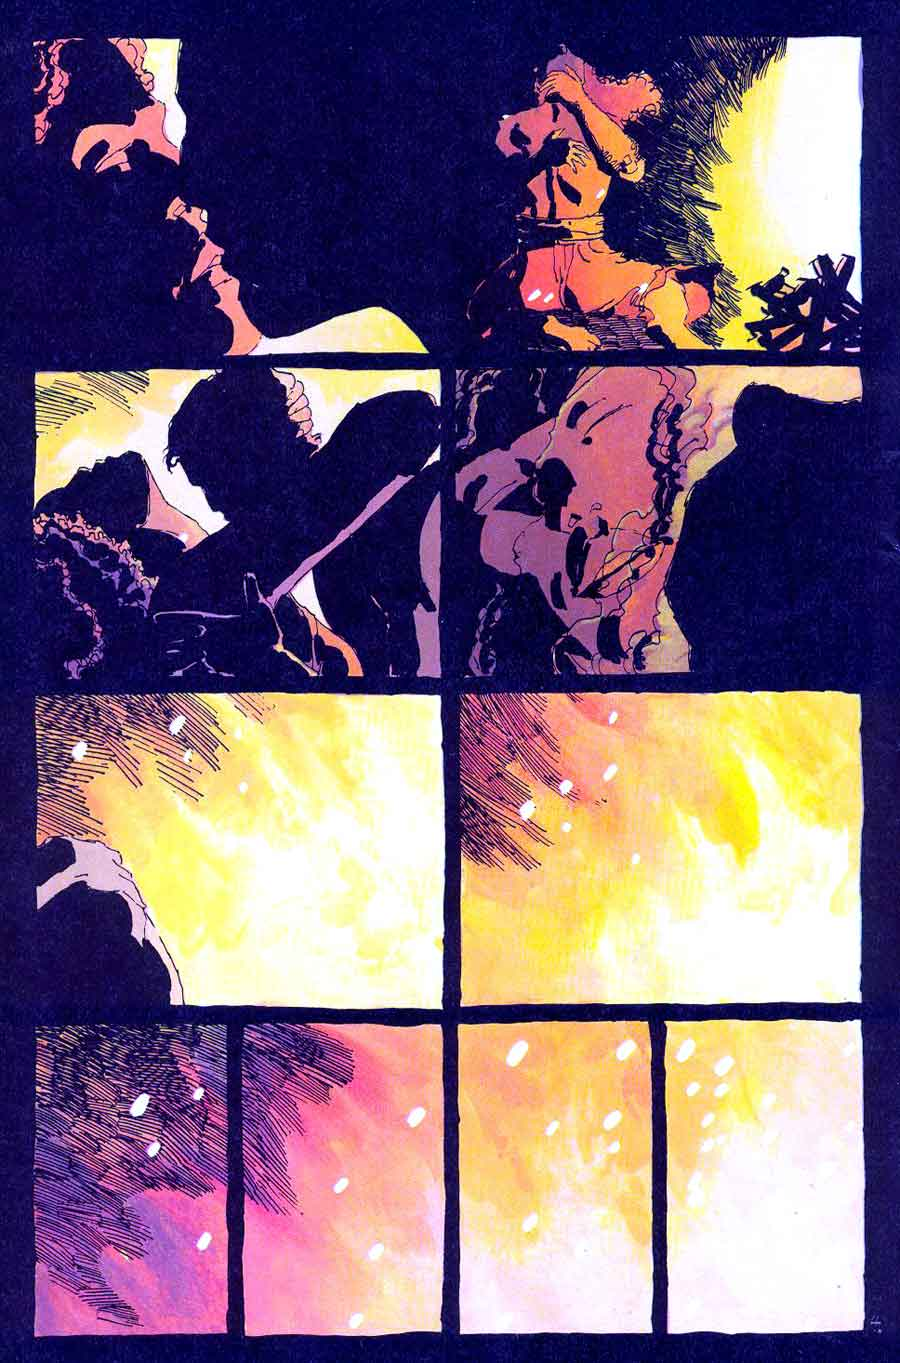 Ronin v1 #5 dc comic book page art by Frank Miller